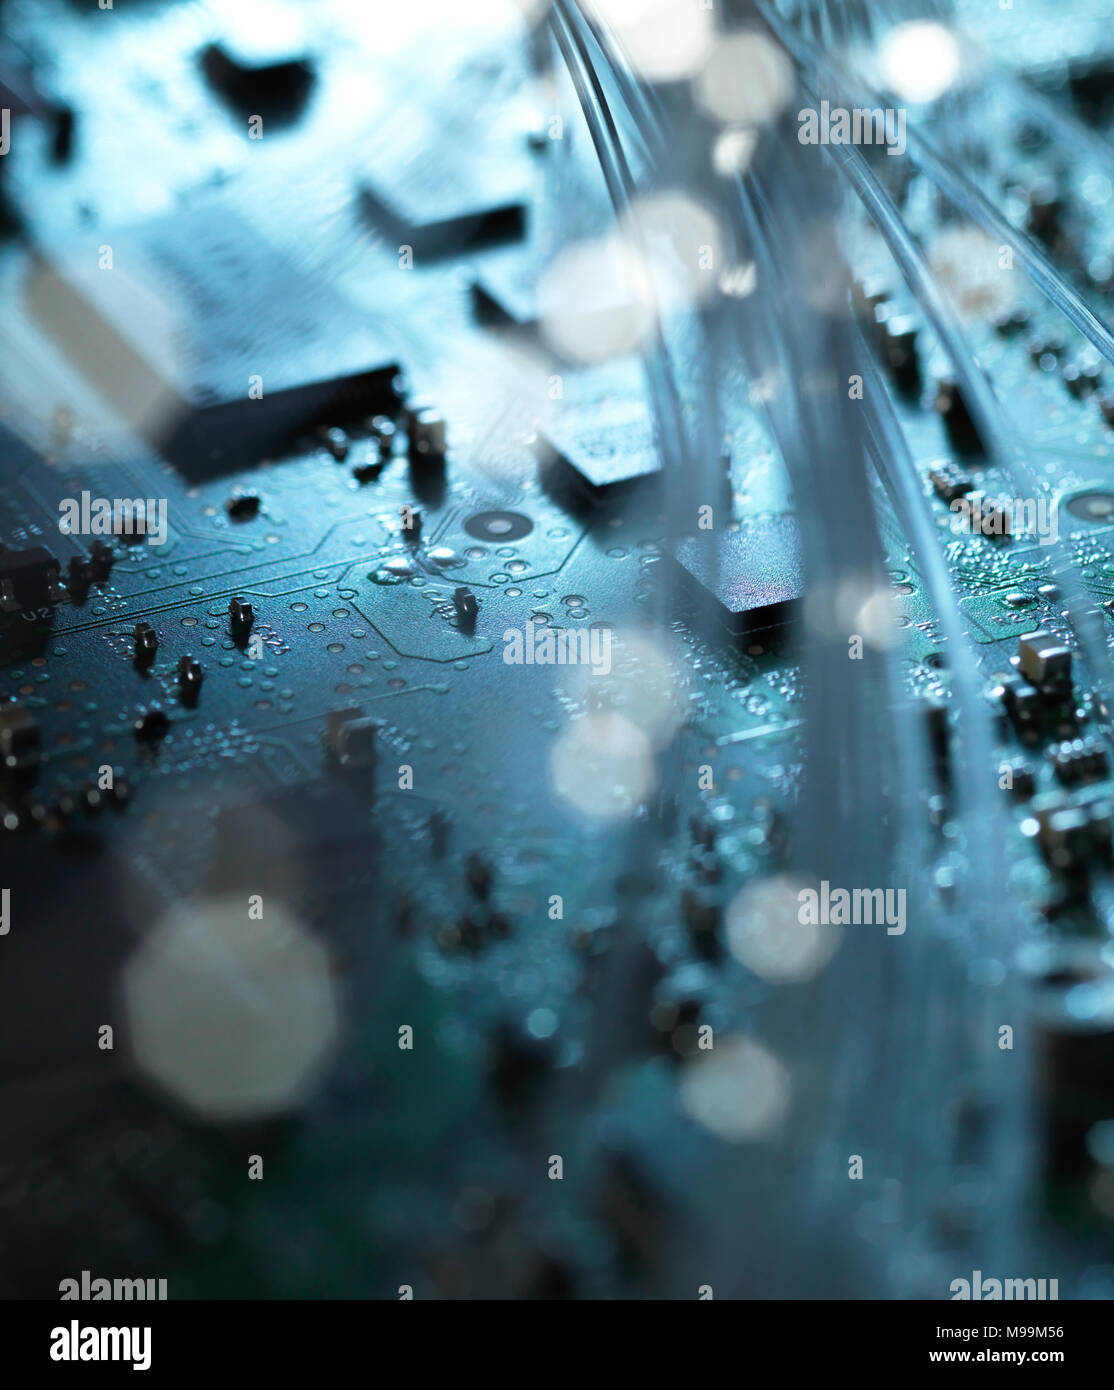 Fiber Optics And Circuit Board By Setsiri Silapasuwanchai